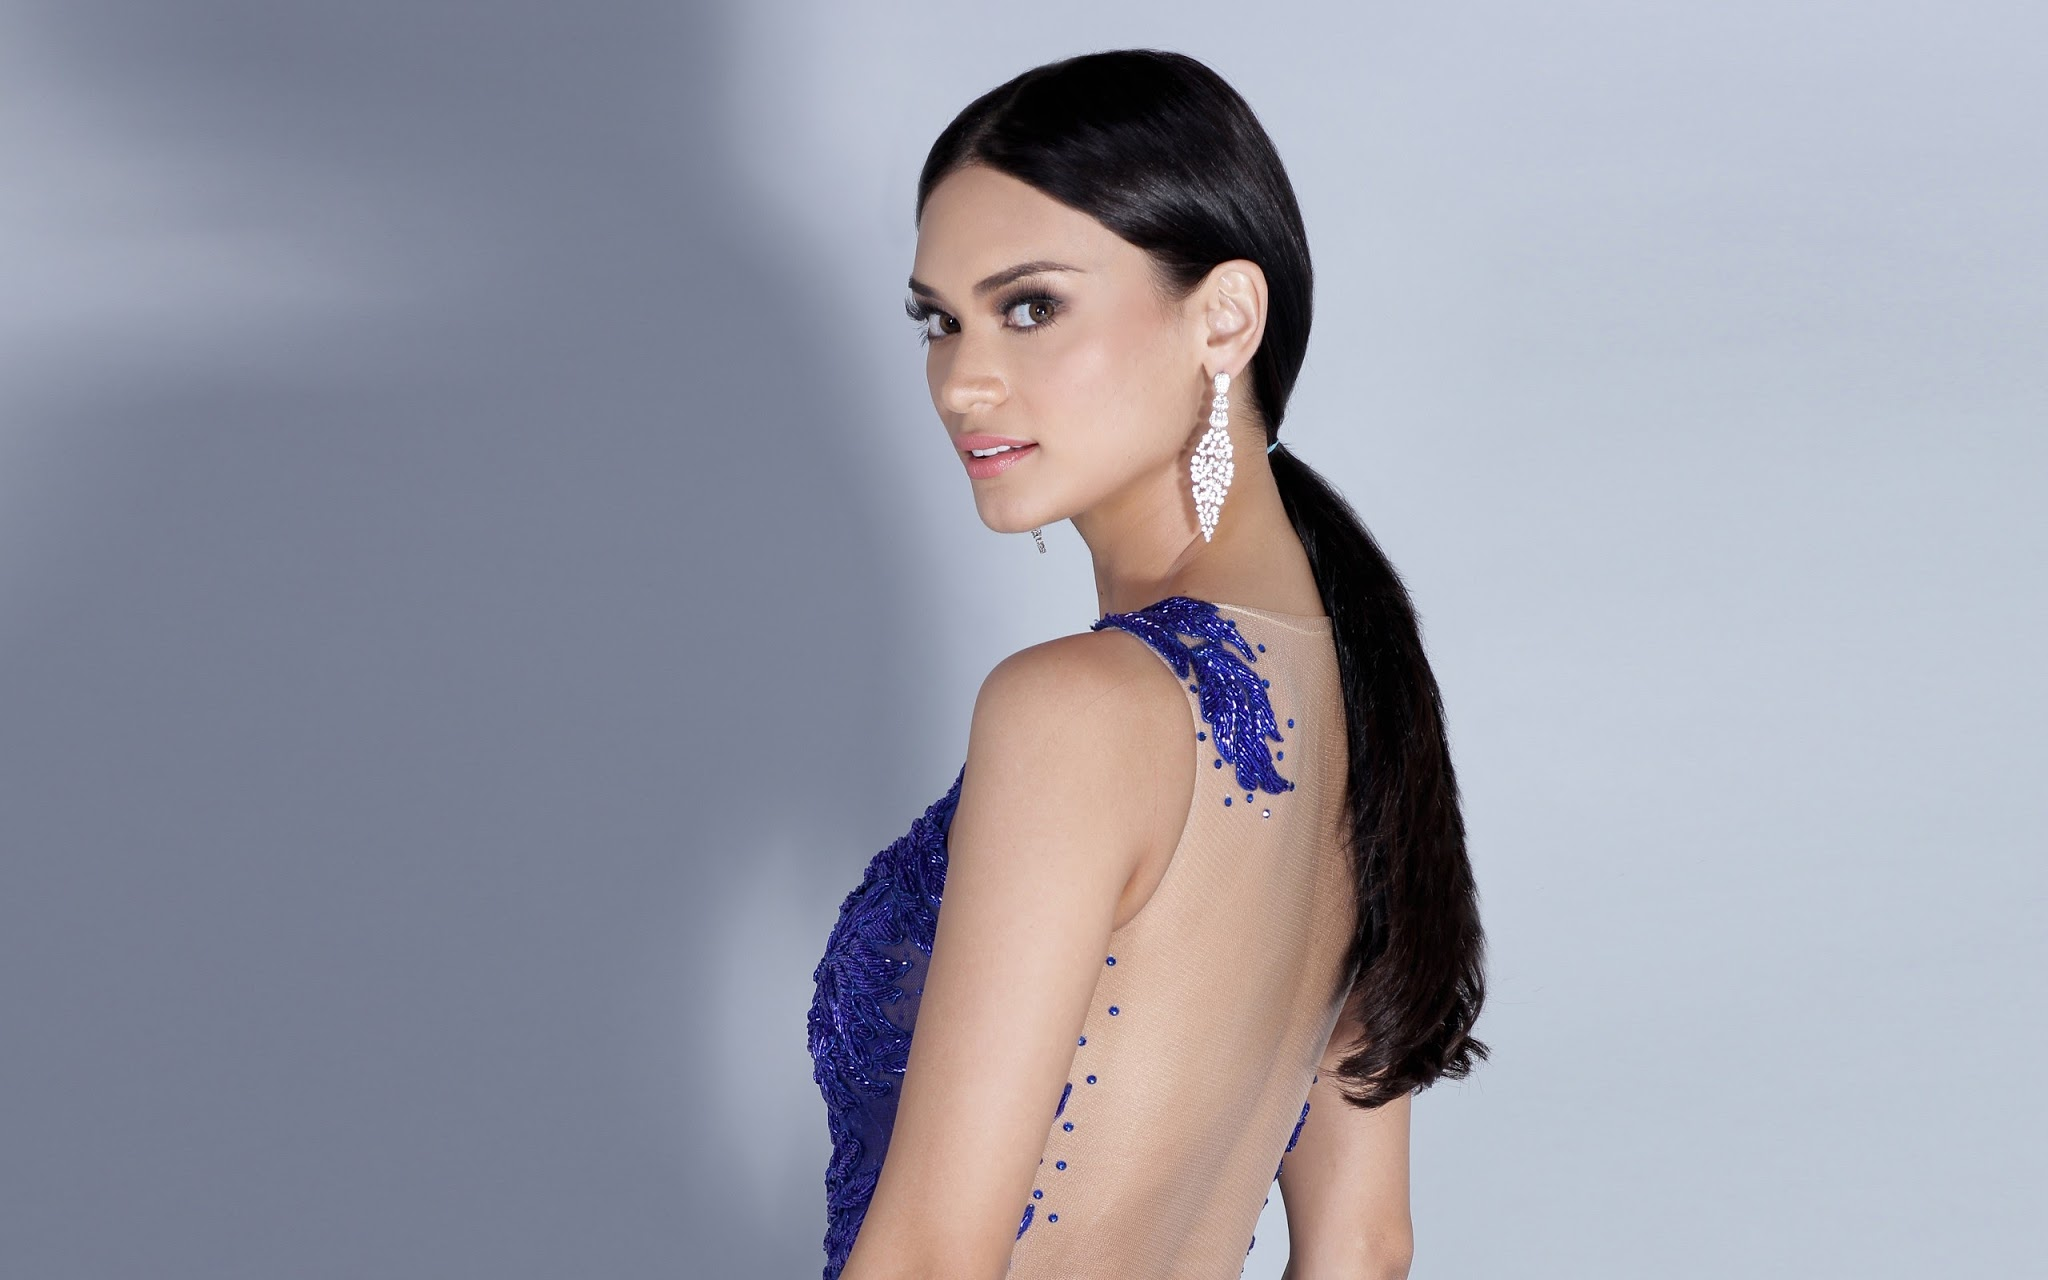 A TRIBUTE TO PIA WURTZBACH - MISS UNIVERSE 2015 - YouTube